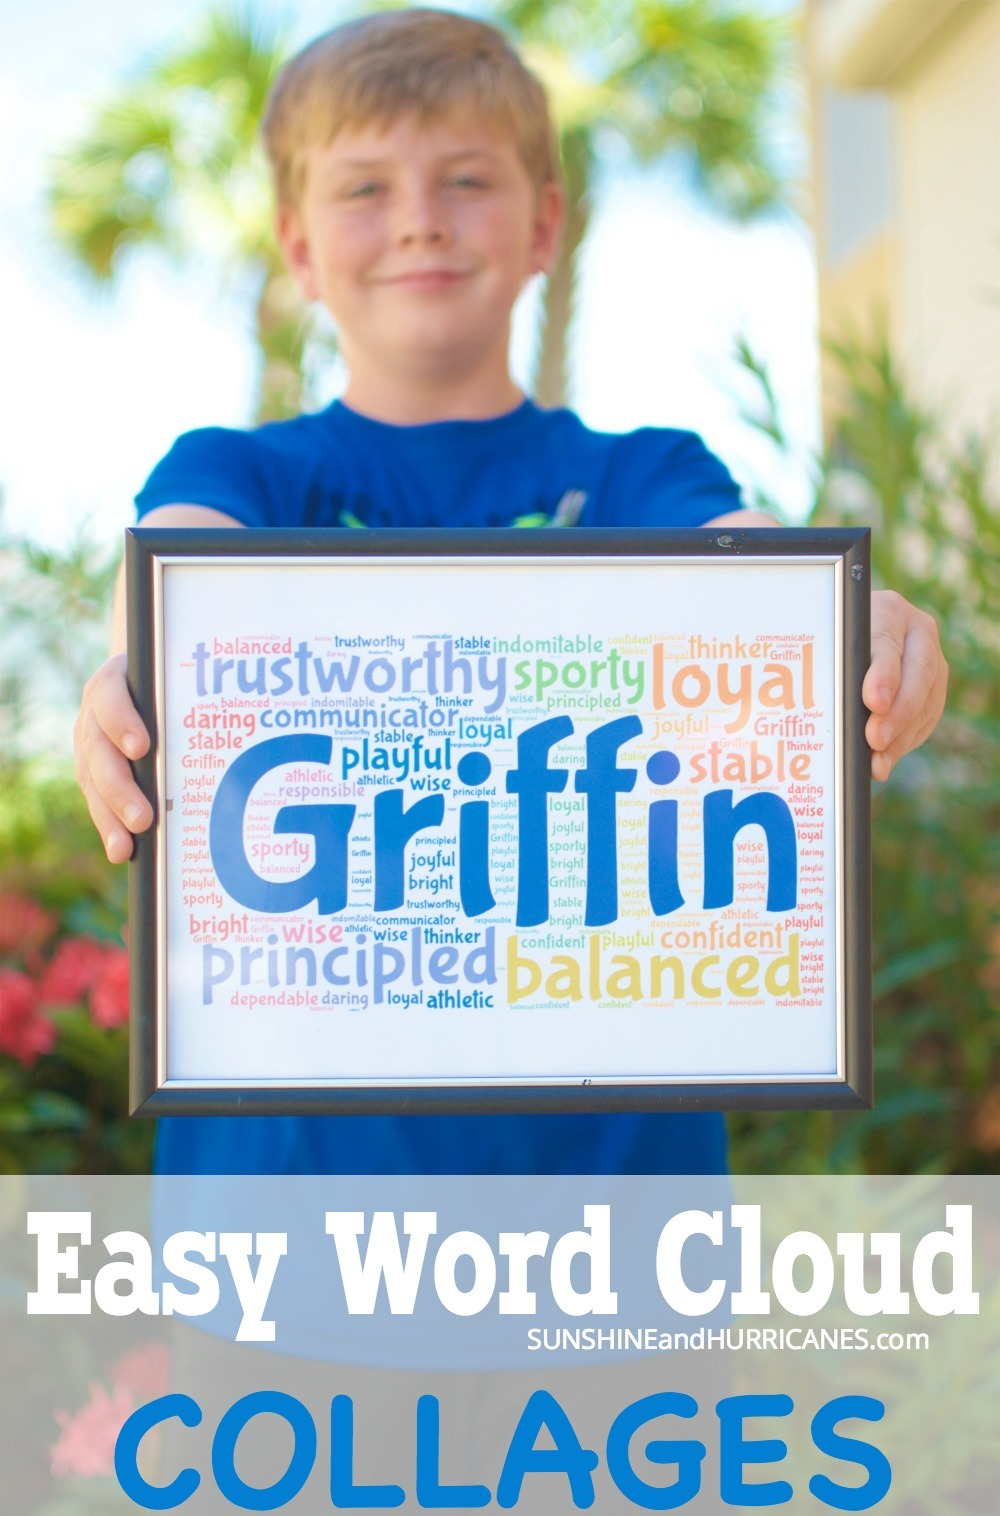 Word Cloud Collages are a super easy group activity that can help focus on character and kindness. Perfect as an end of year class project or for sports teams, scout troops and church youth groups. Word Cloud Collages from SunshineandHurricanes.com